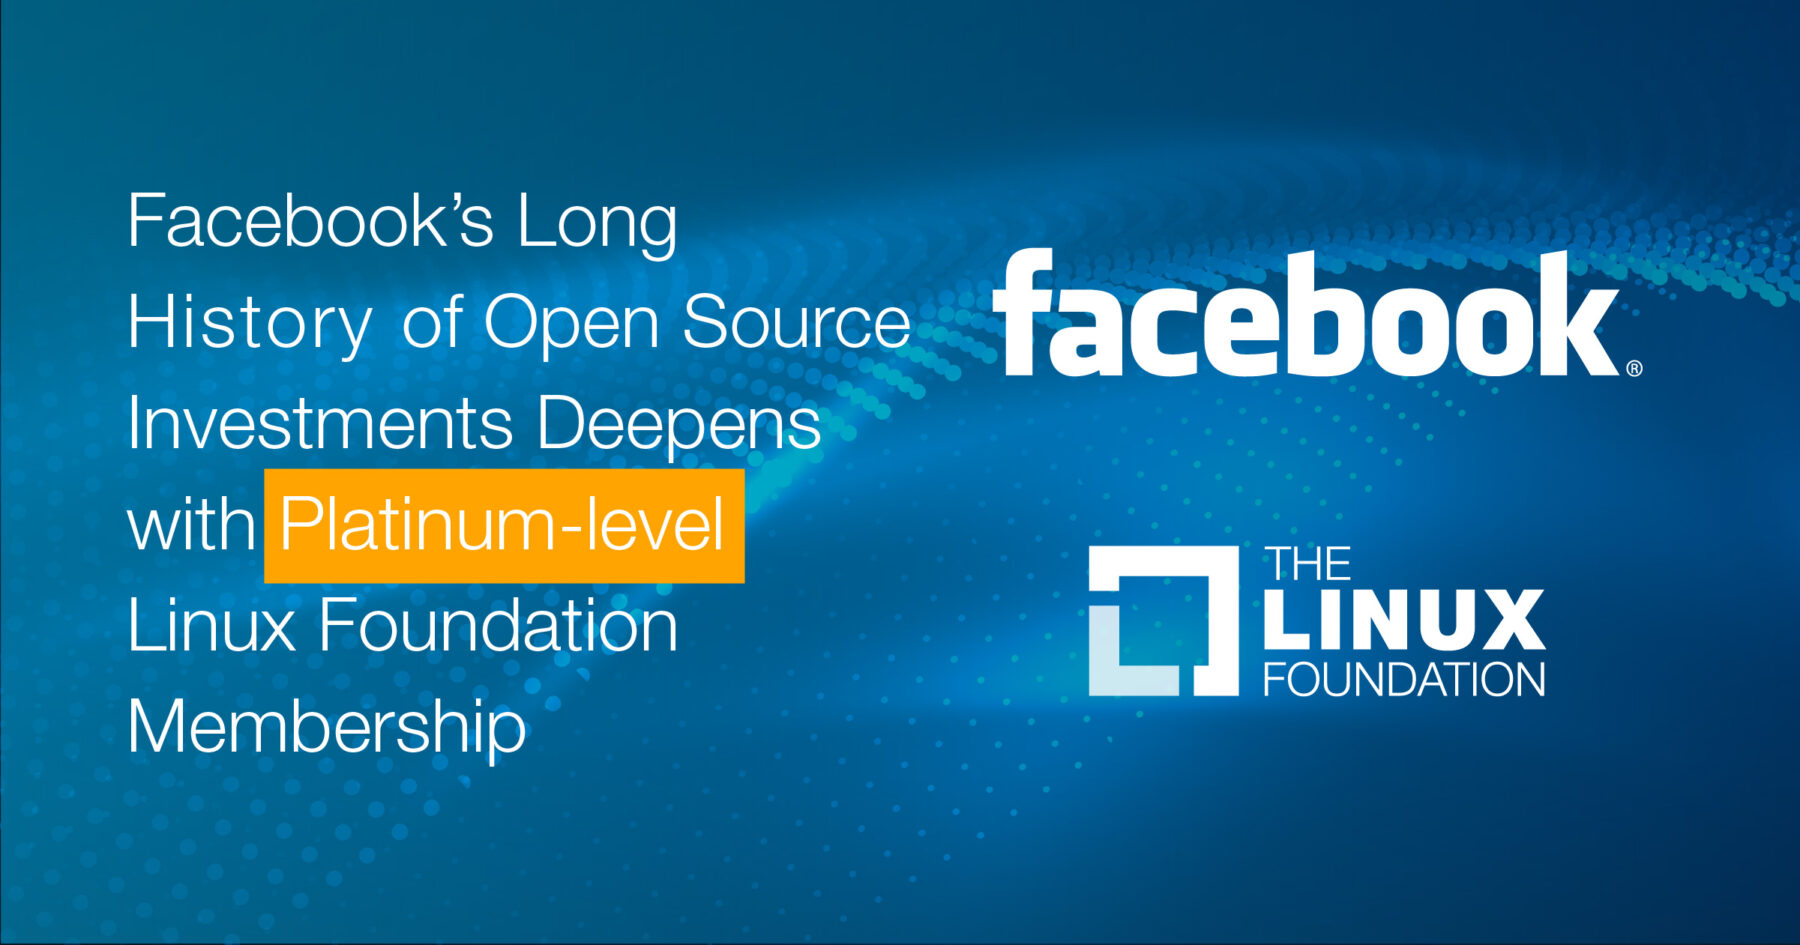 Facebook's Long History of Open Source Investments Deepens with Platinum-level Linux Foundation Membership